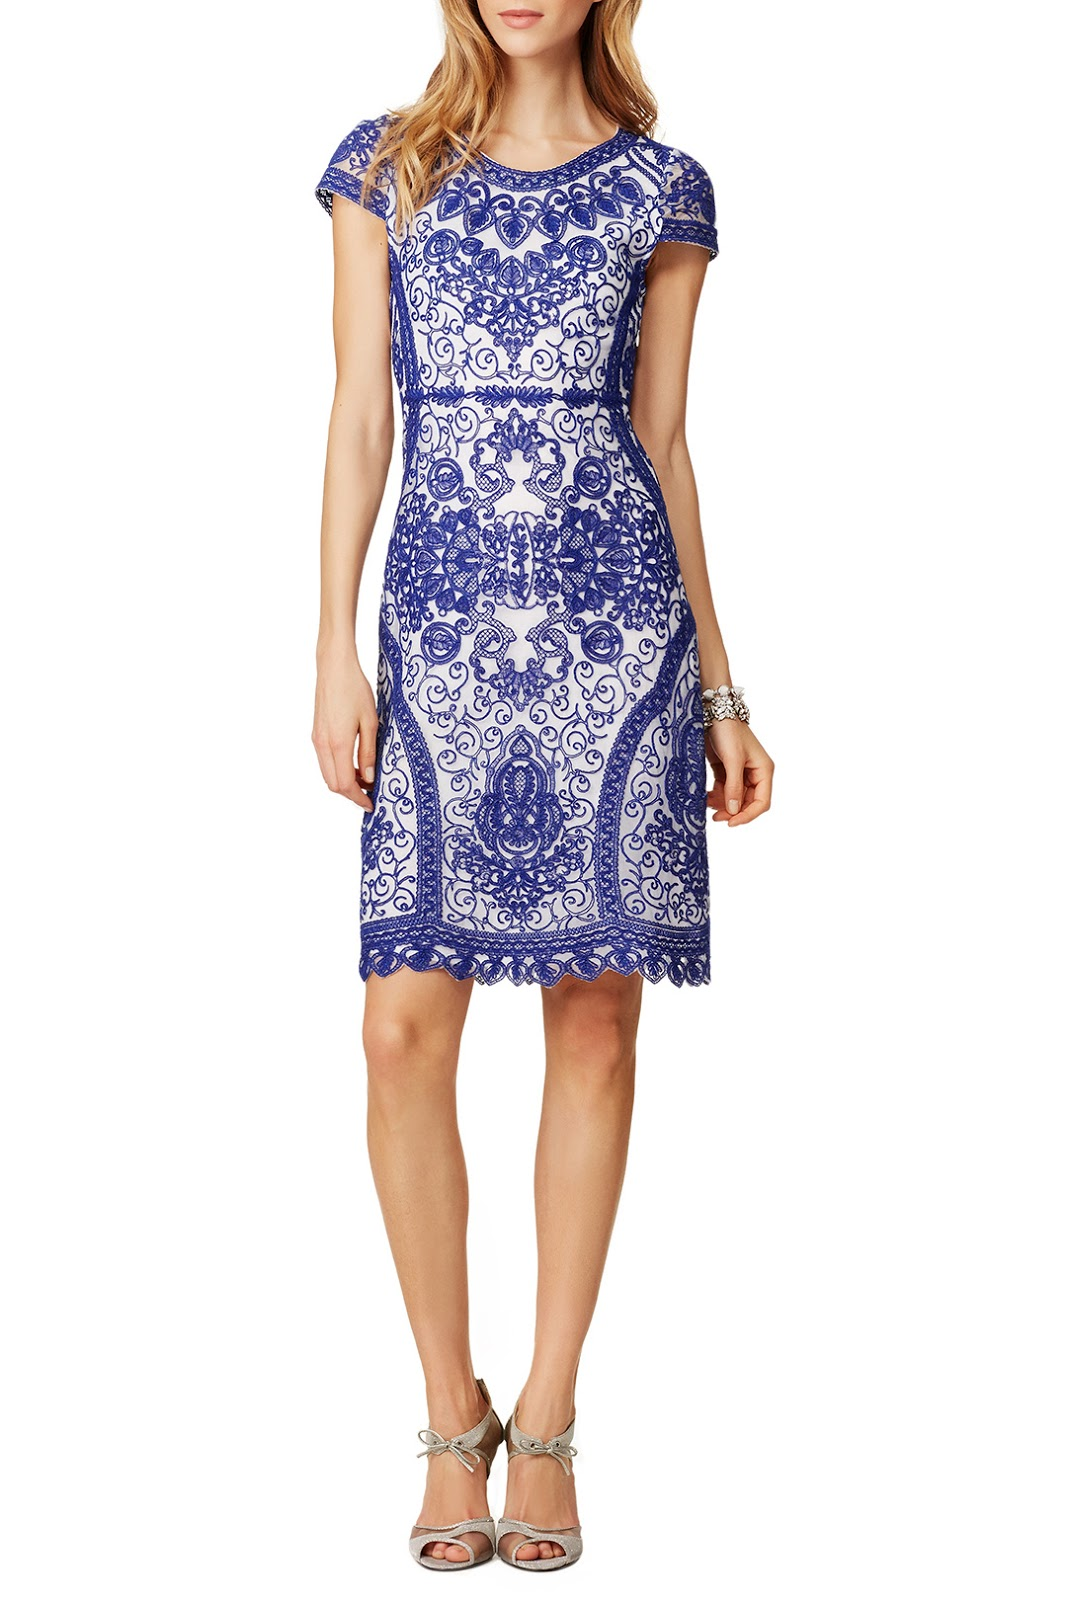 64a739e1ba Finally, this This beautiful Yoana Baraschi Pepin Sheath dress from Rent the  Runway was an a absolute favorite by so many of you and I totally agree.